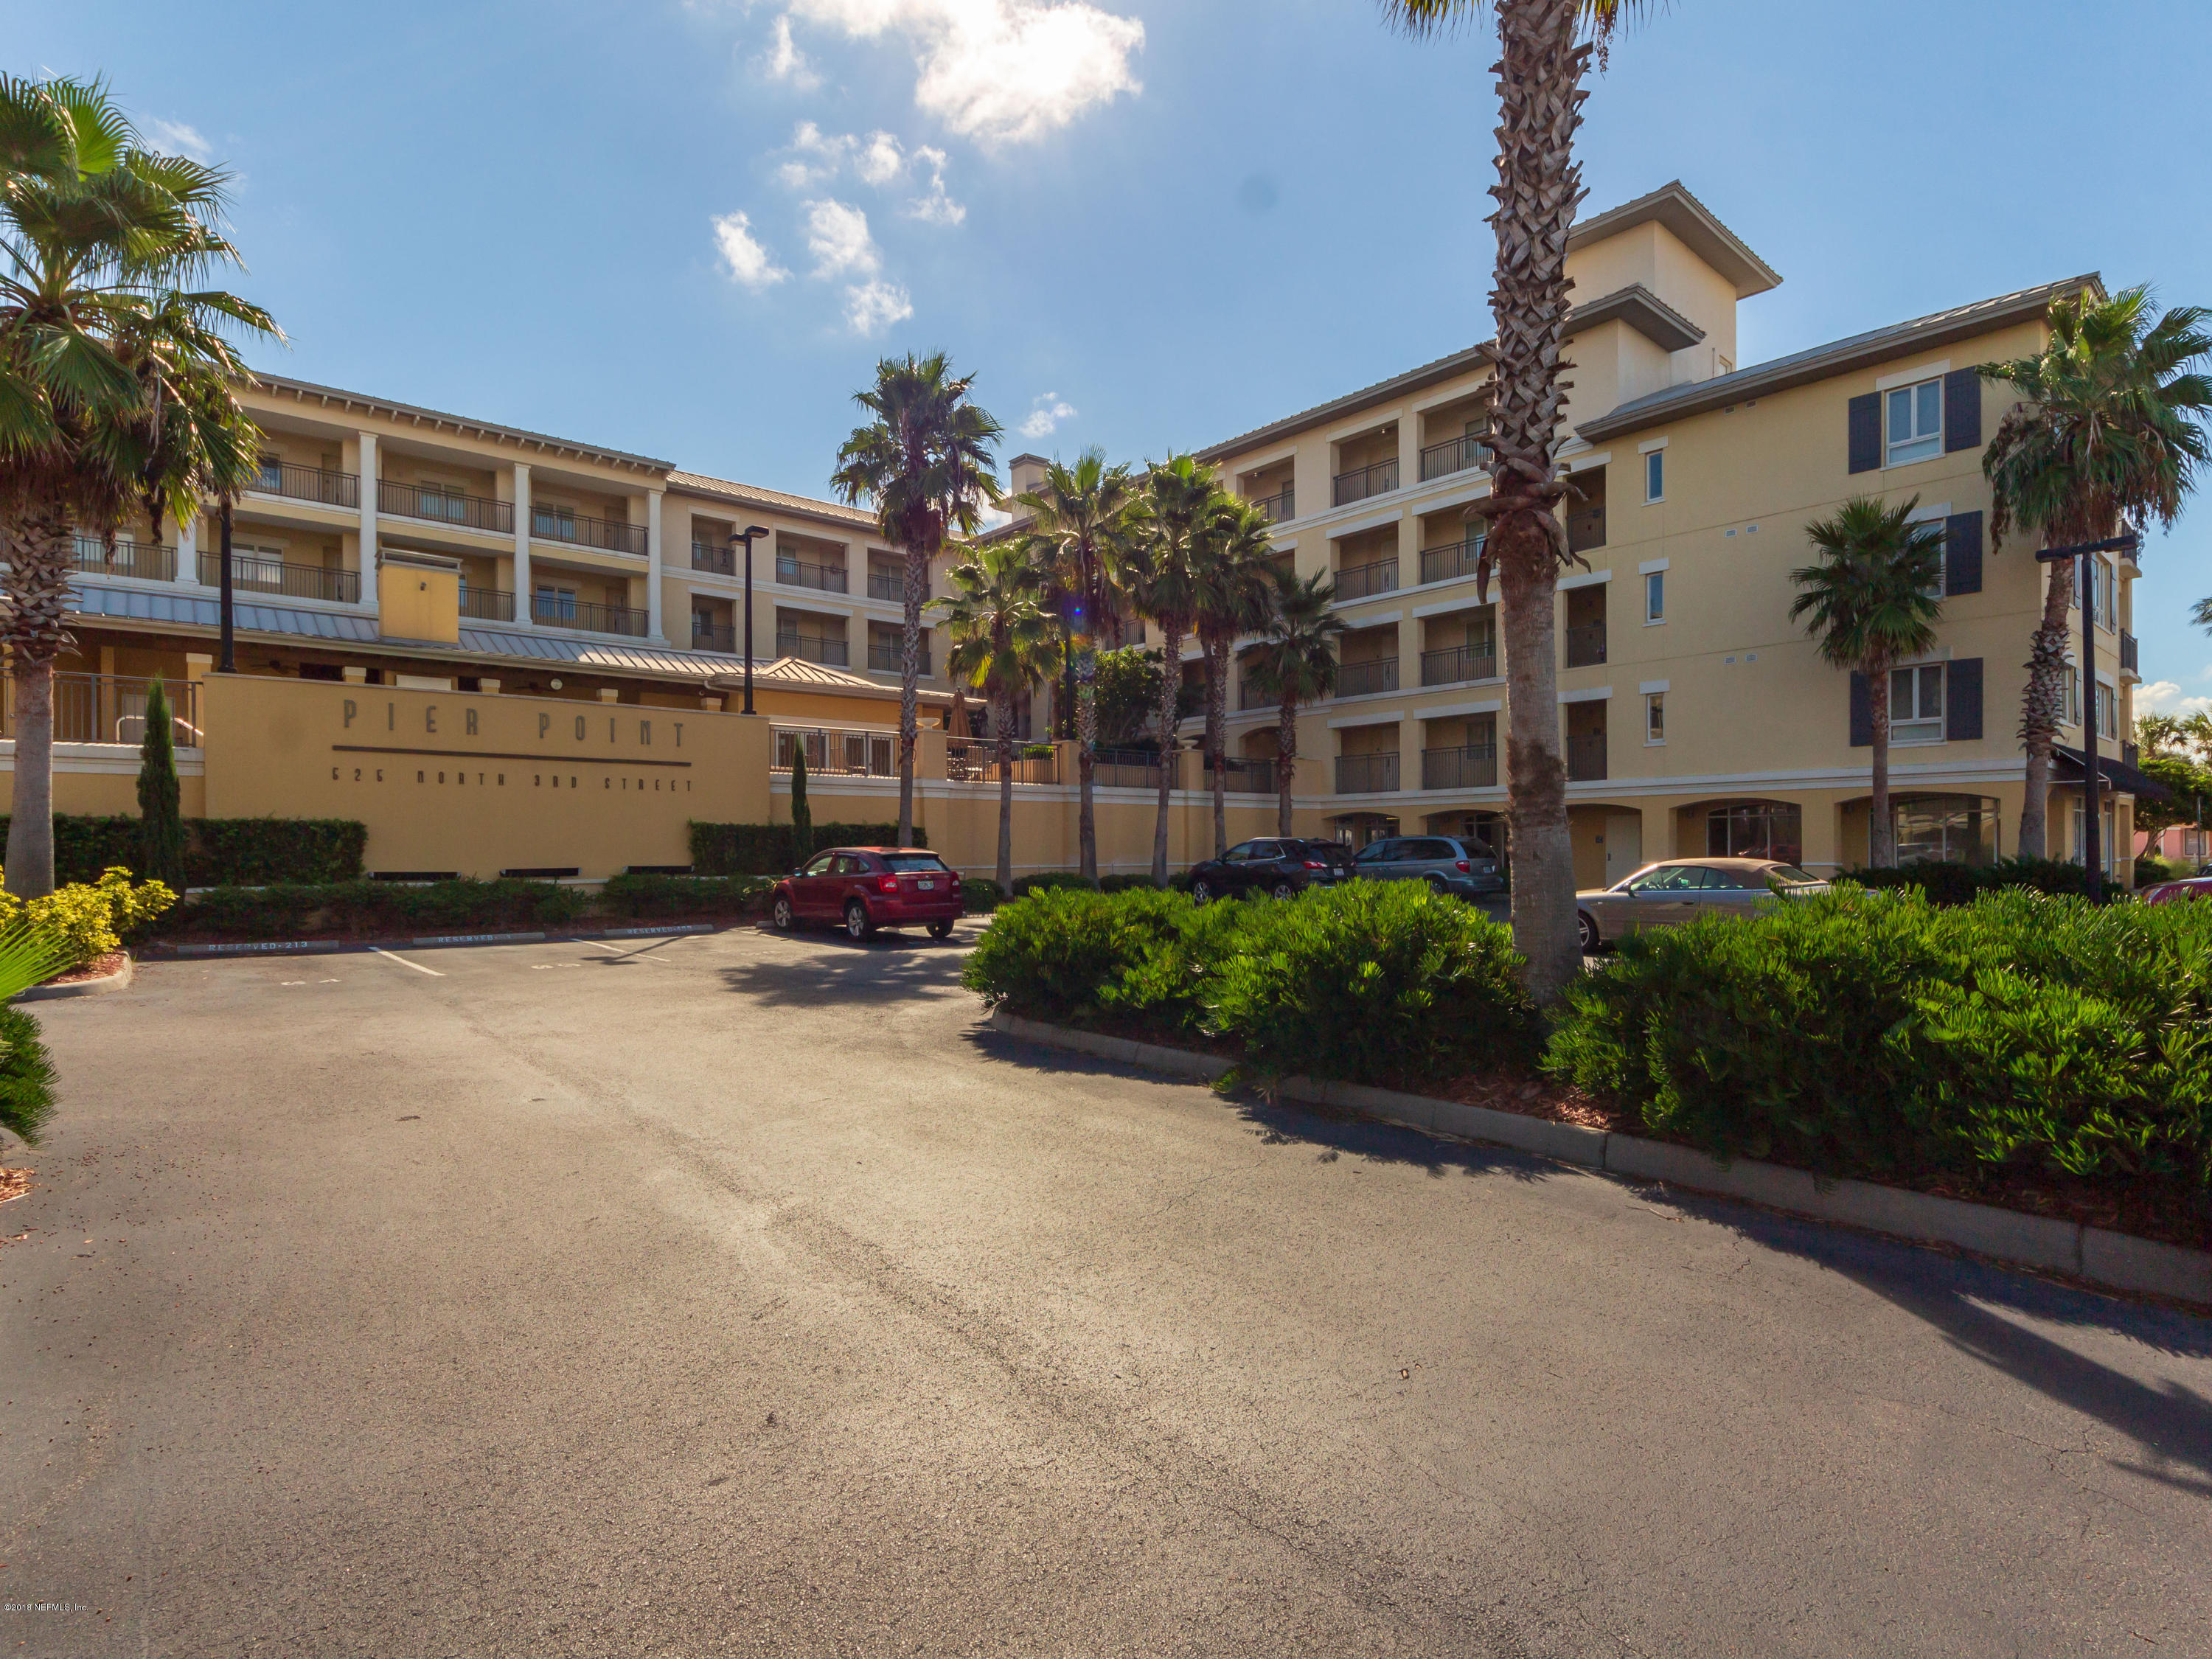 525 3RD, JACKSONVILLE BEACH, FLORIDA 32250, 3 Bedrooms Bedrooms, ,2 BathroomsBathrooms,Residential - condos/townhomes,For sale,3RD,957333